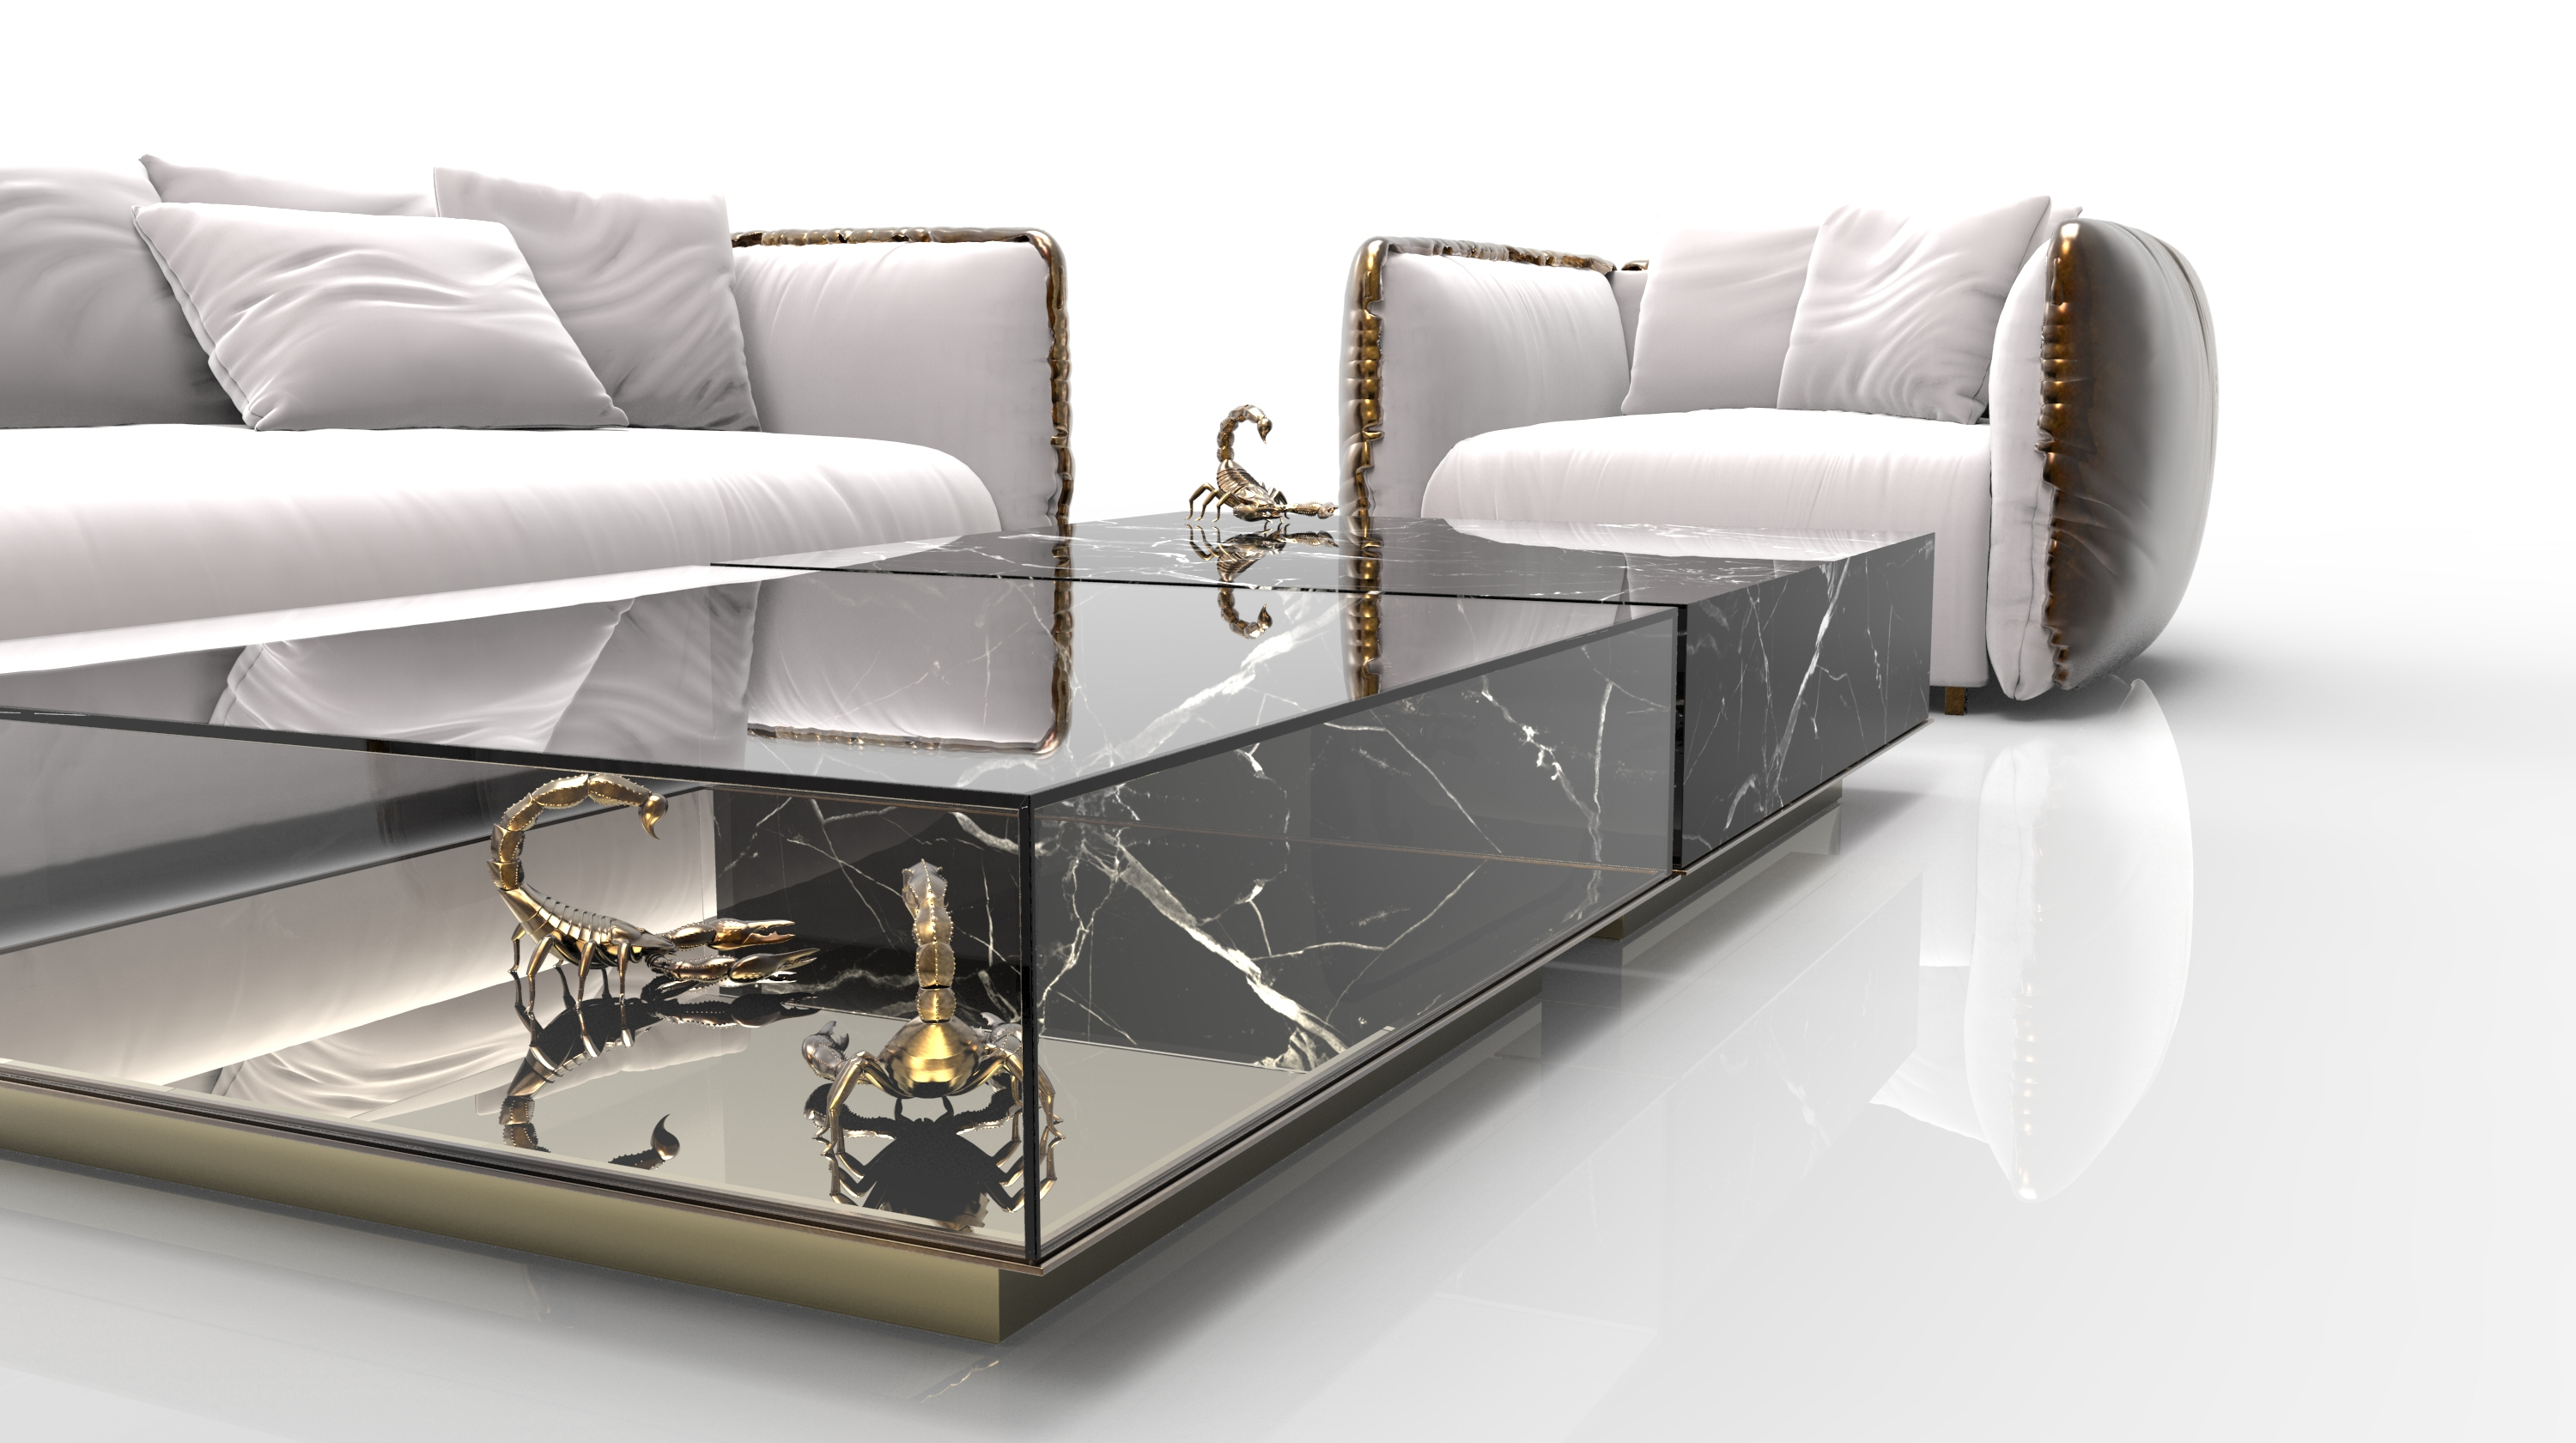 2 Tone Grey And White Marble Coffee Tables With Regard To Latest Marble Coffee And Side Table Designs On Home Interiors (View 7 of 20)